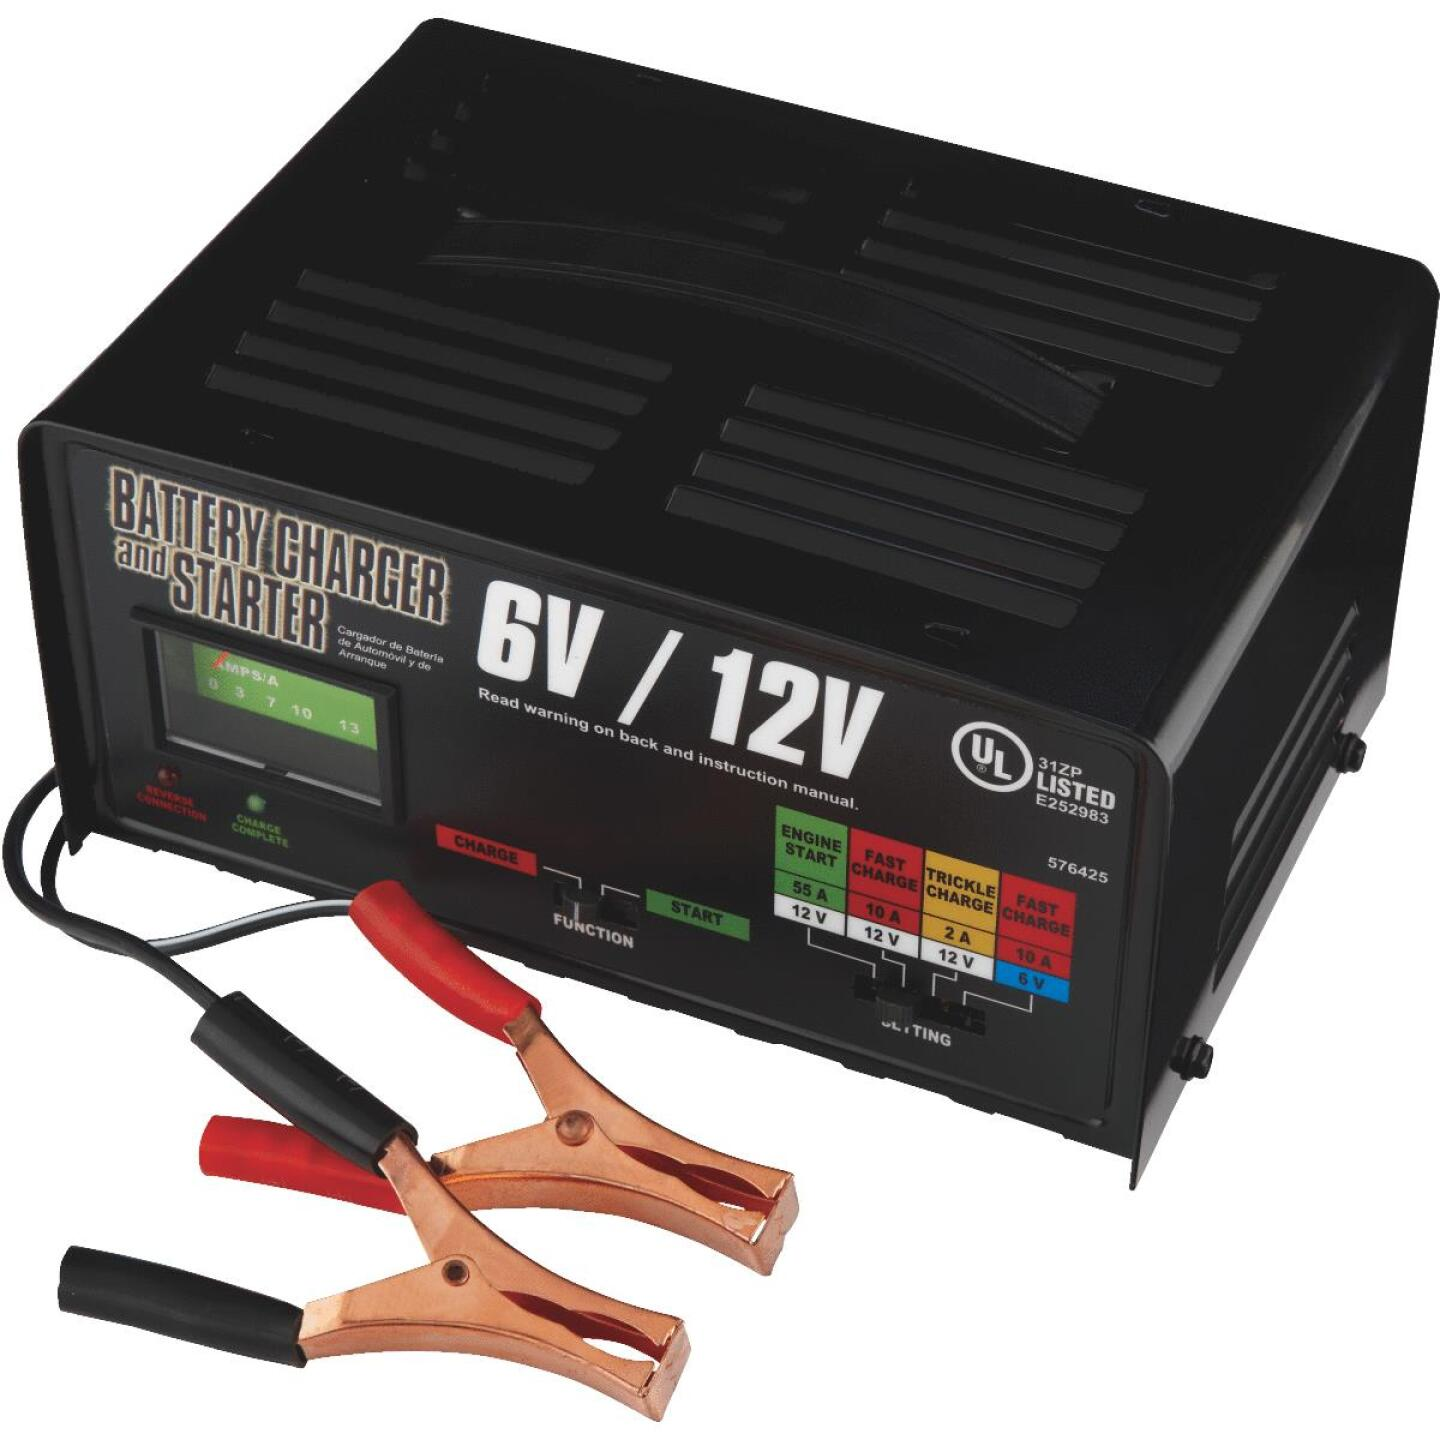 Automatic 6V and 12V 2A/10A/55A Auto Battery Charger Image 4